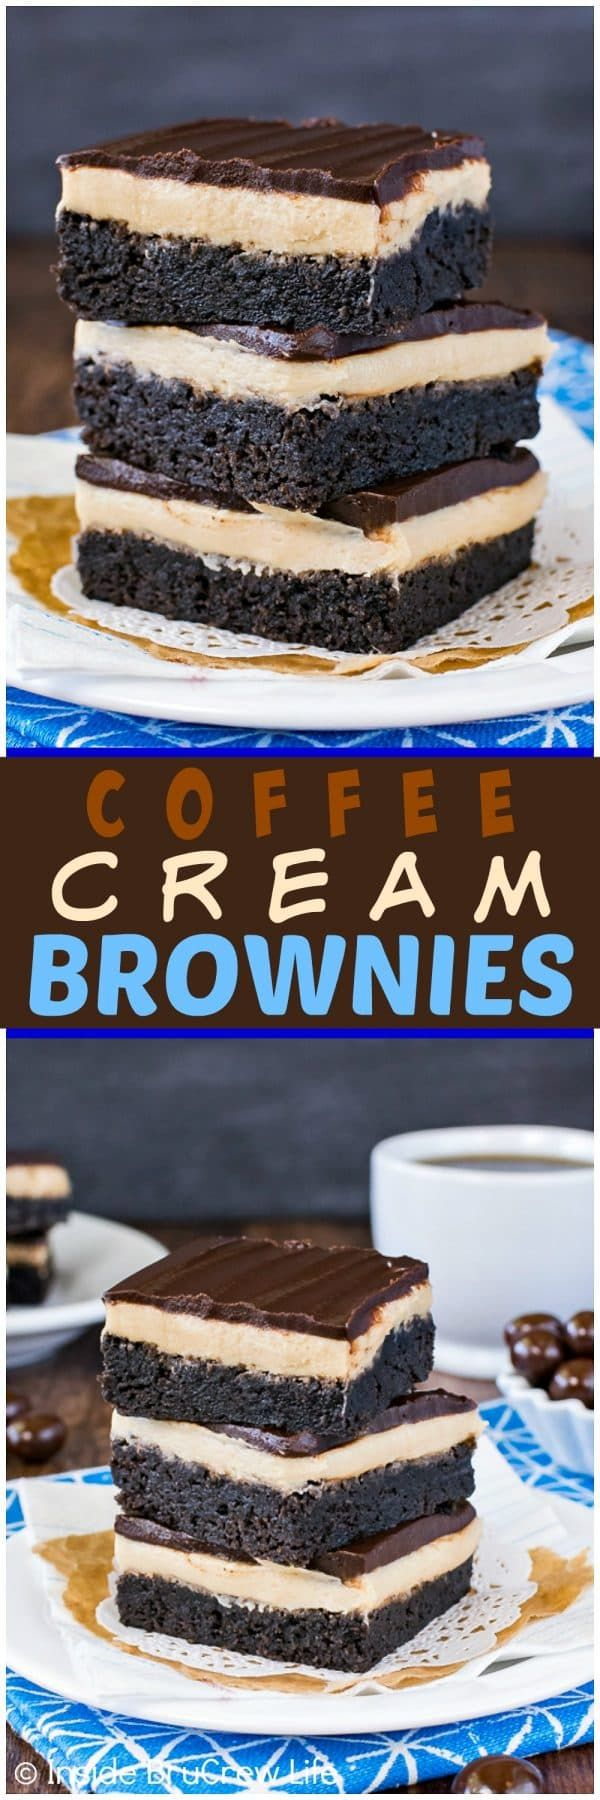 Coffee Cream Brownies - layers of homemade brownies, coffee frosting, and dark chocolate make these the best brownies! Great after school snack or dessert for the coffee lovers in your life!